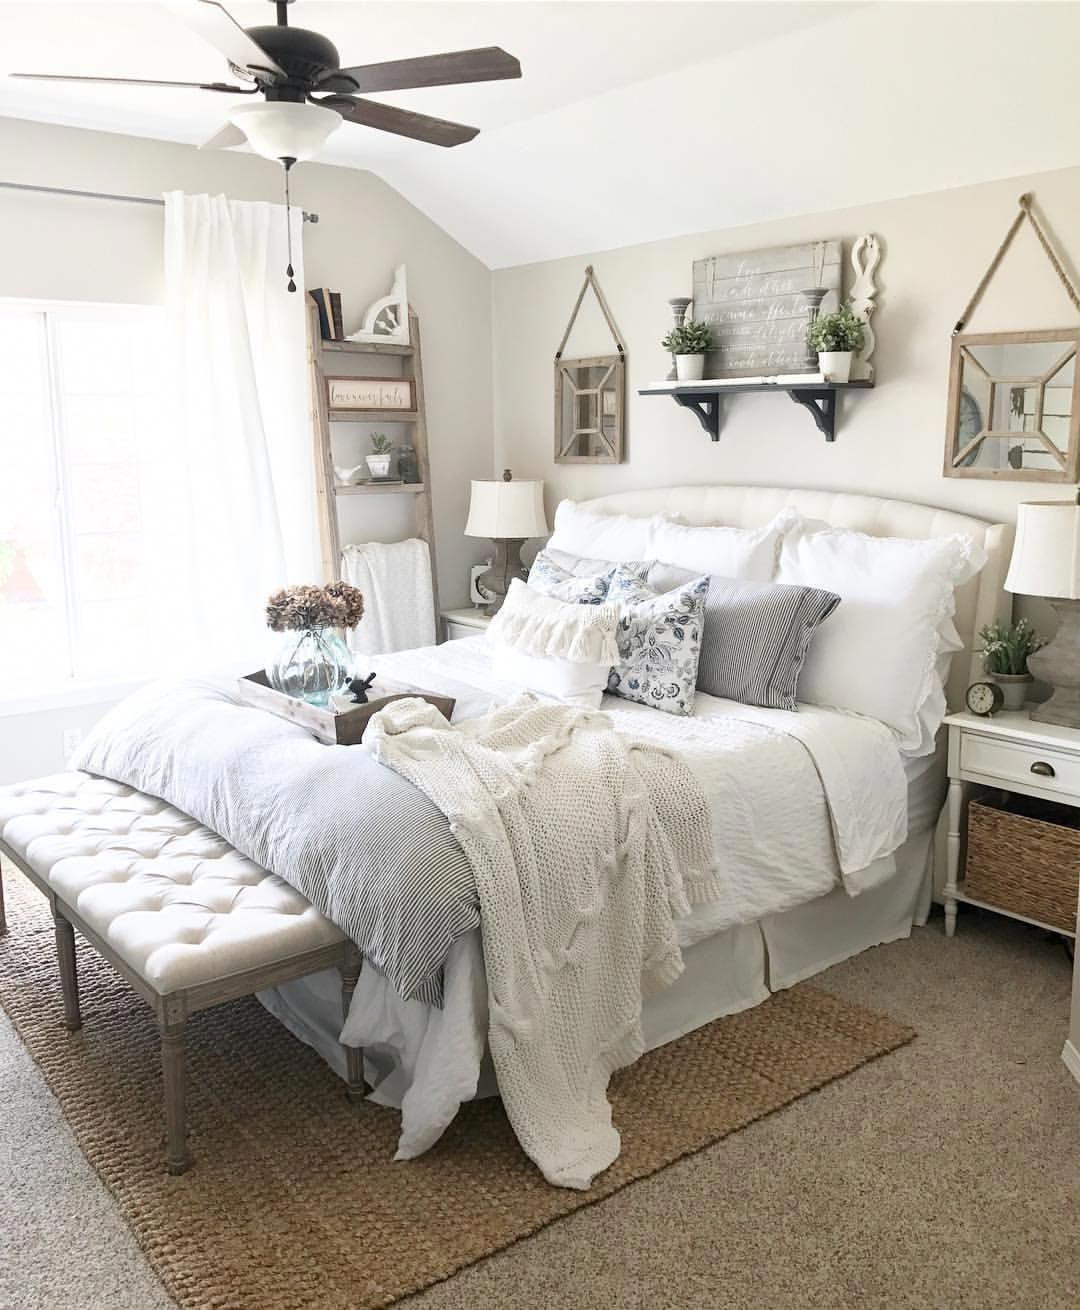 home decor apartment guide homedecorapartment modern on home interior design bedroom id=76041